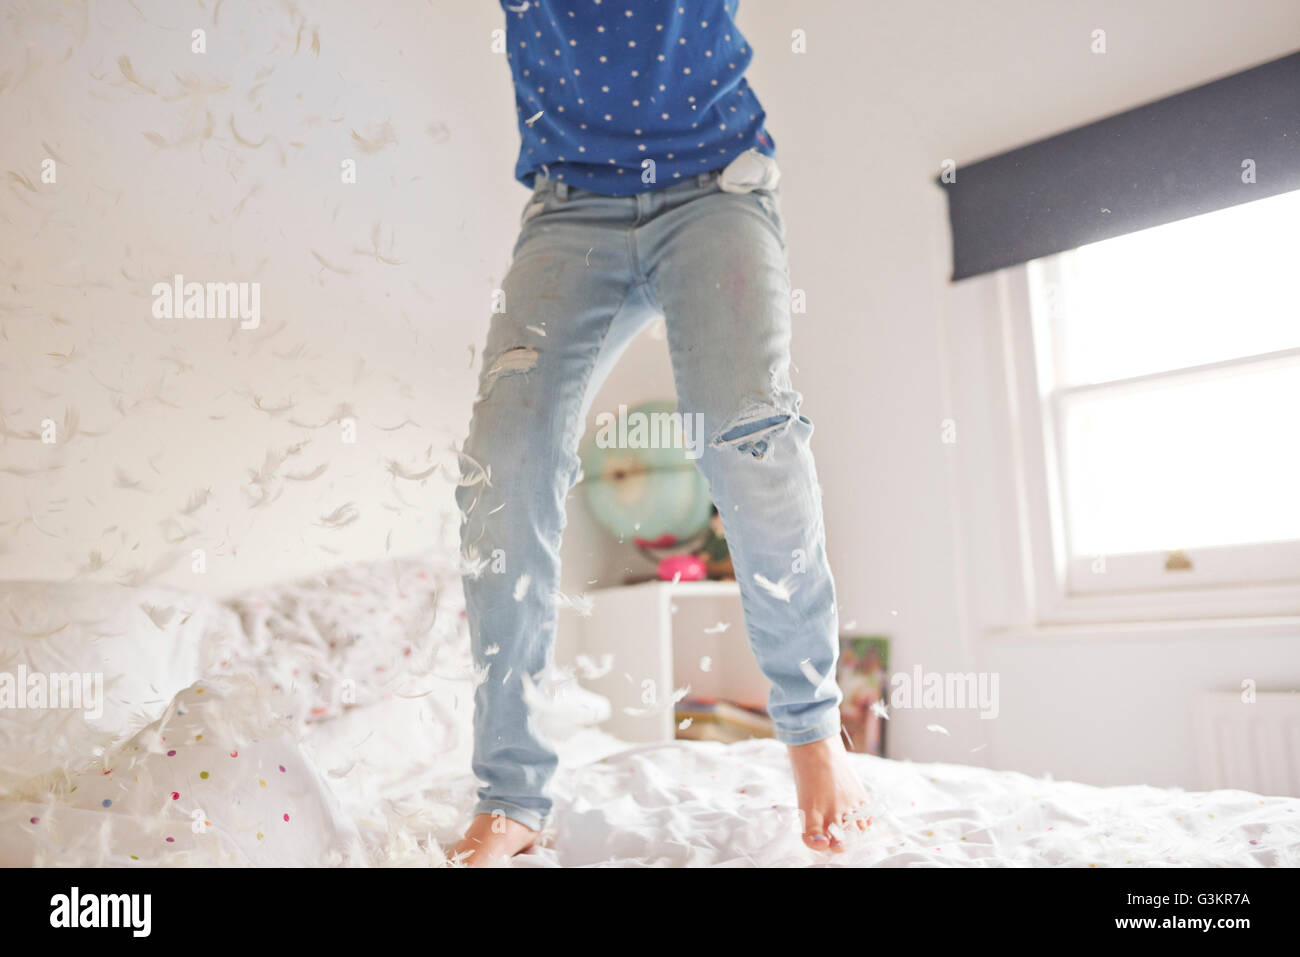 stock photo waist down of girl jumping and feather pillow fighting on bed